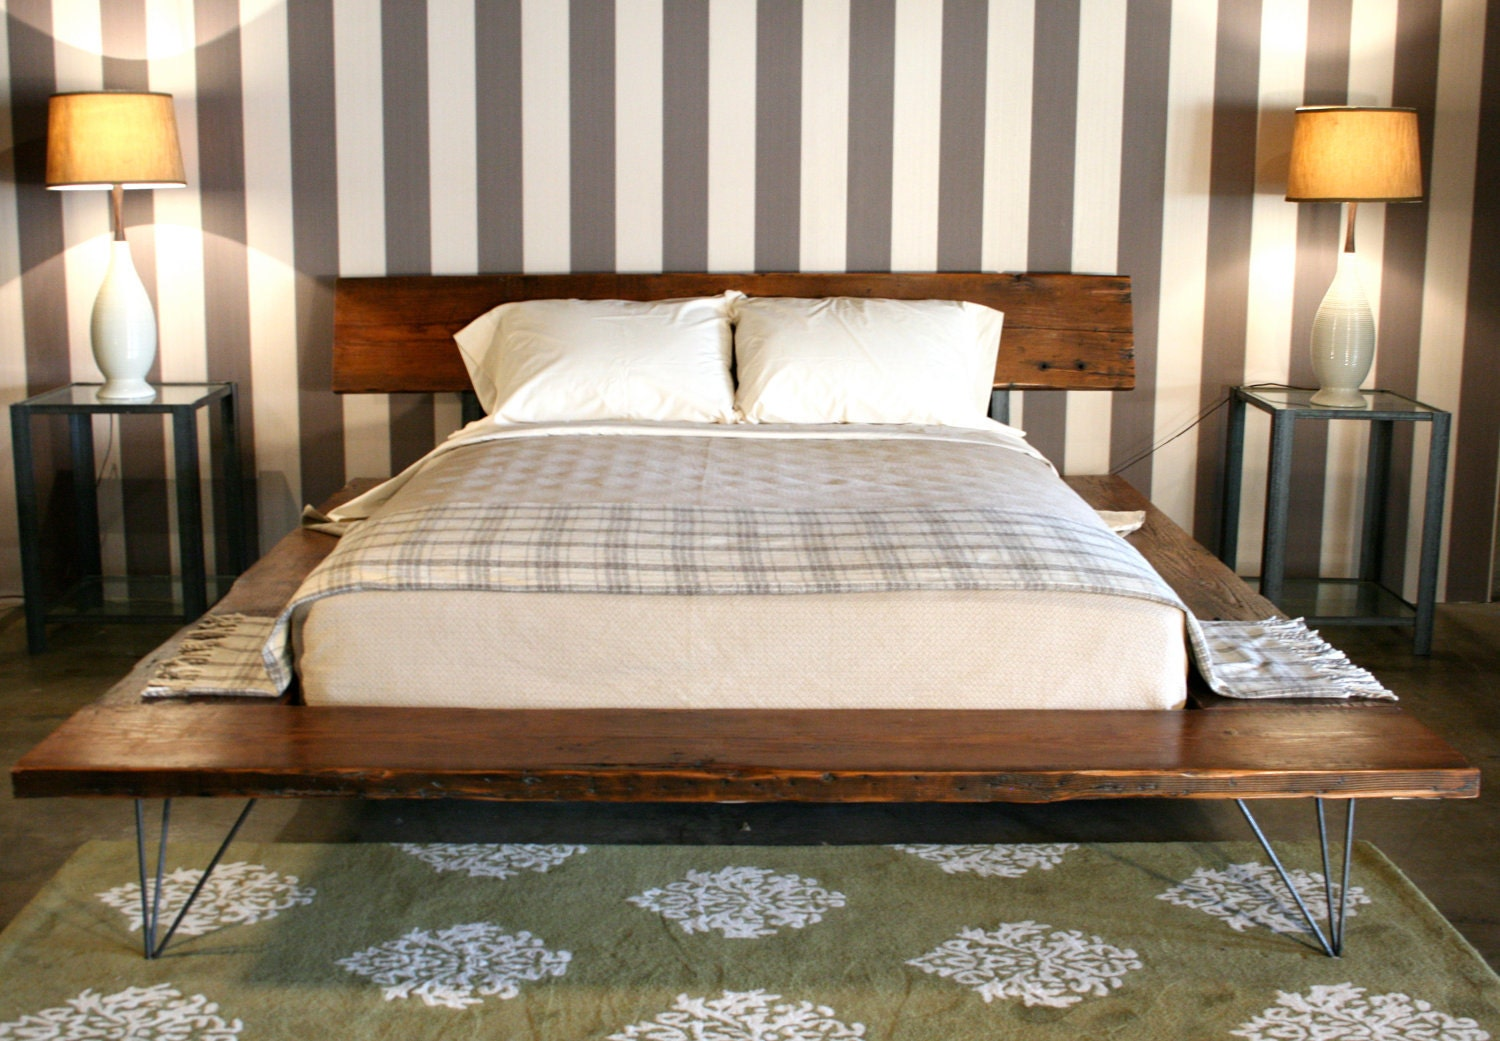 Reclaimed Wood Platform Bed - handmade sustainably in Los Angeles